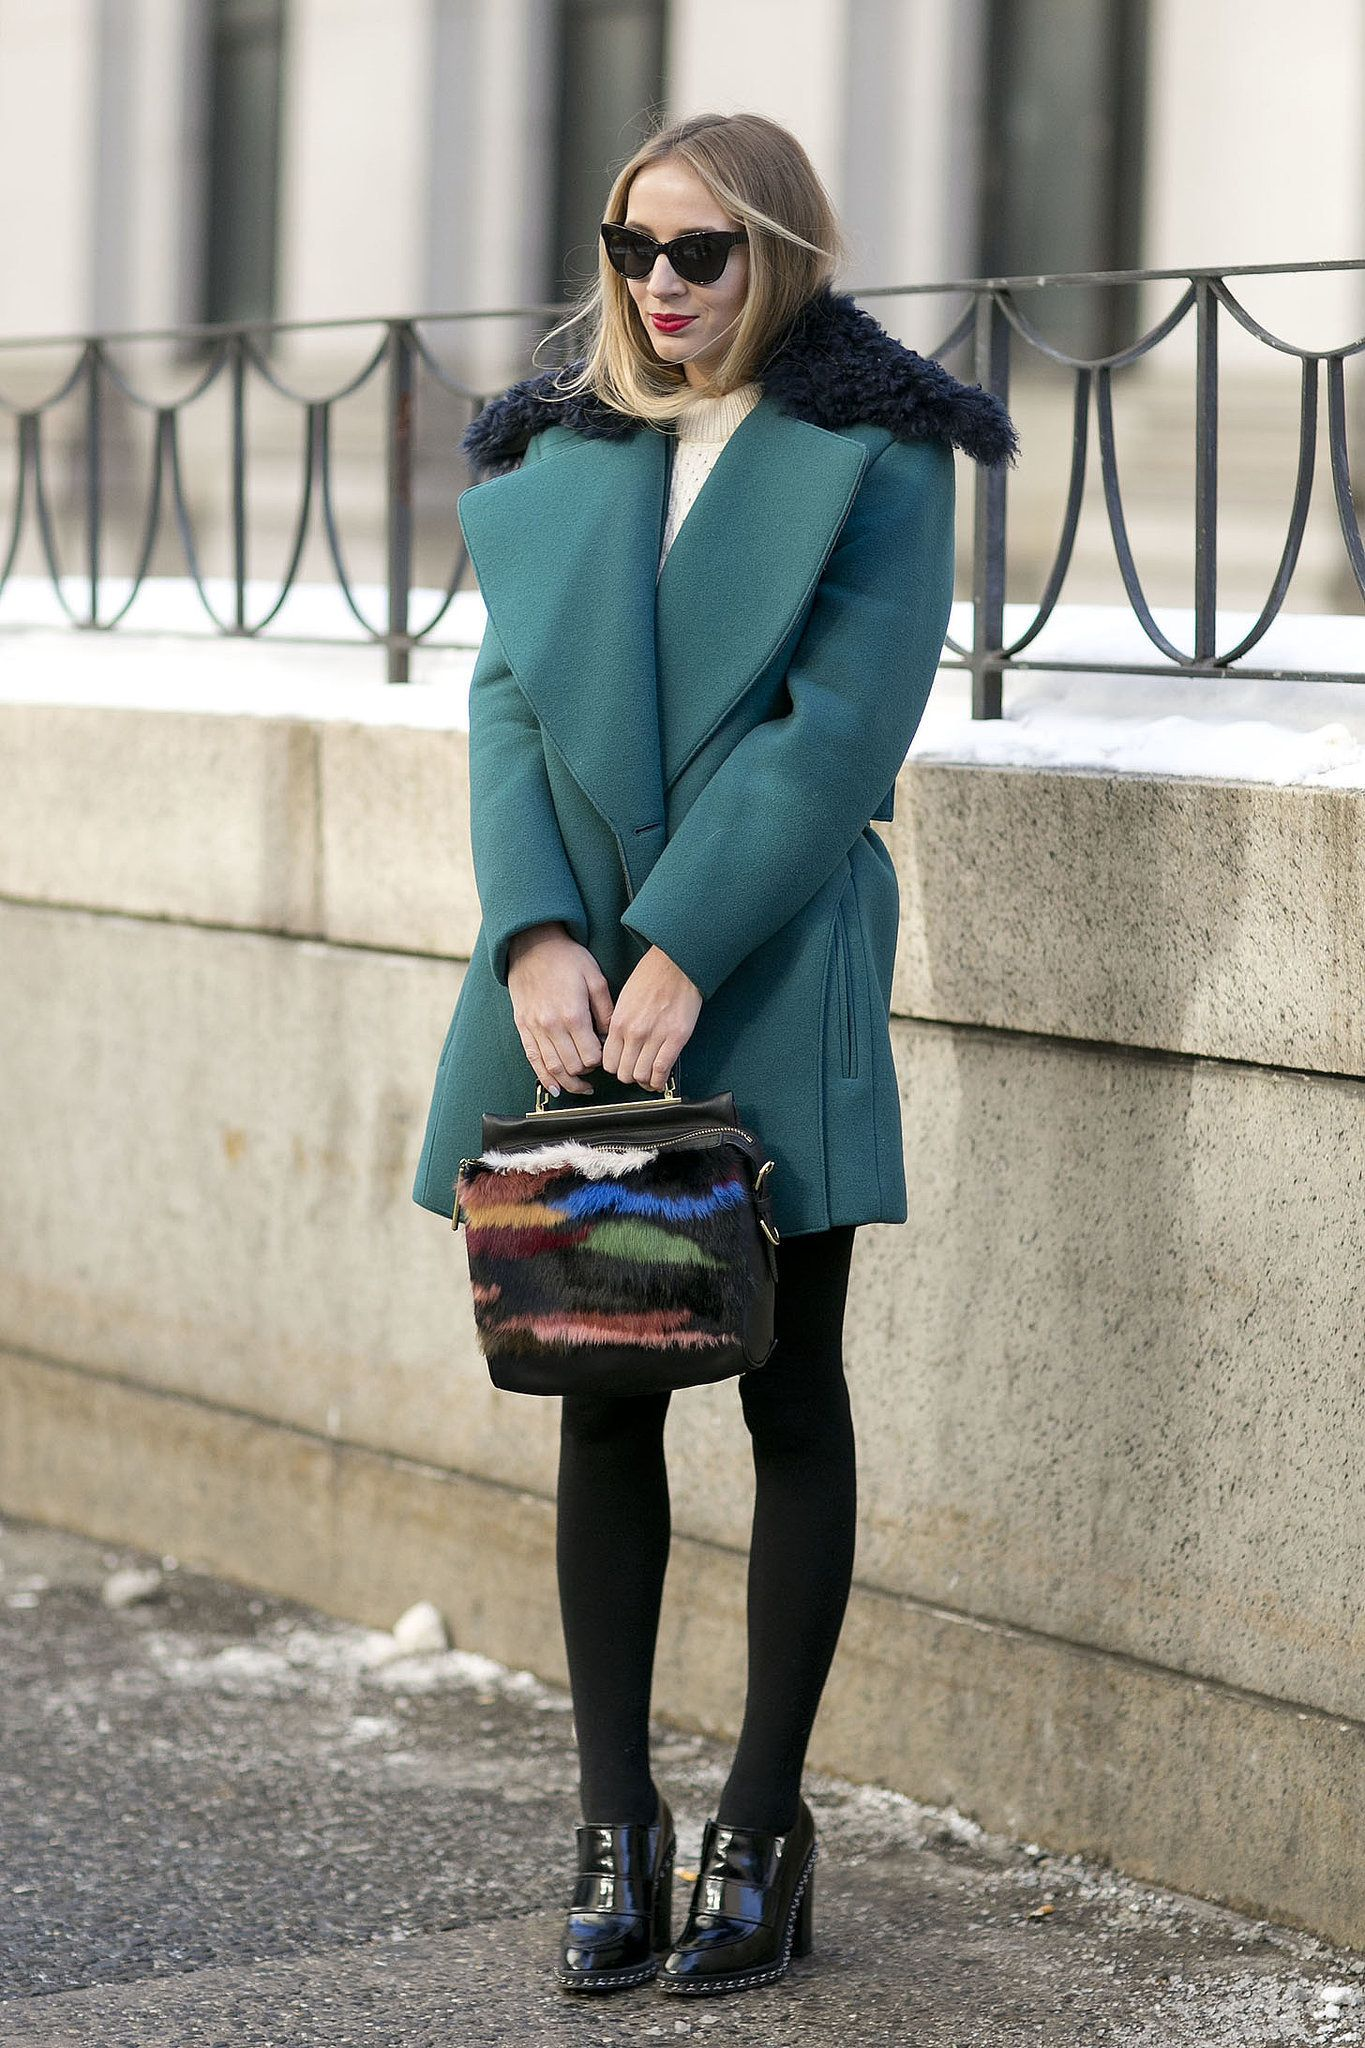 We feel hard for Harley Viera-Newton's jewel-toned coat and fur-covered 3.1 Phillip Lim bag. - Street Style at New York Fashion Week #NYFW                                                                                                3 / 242